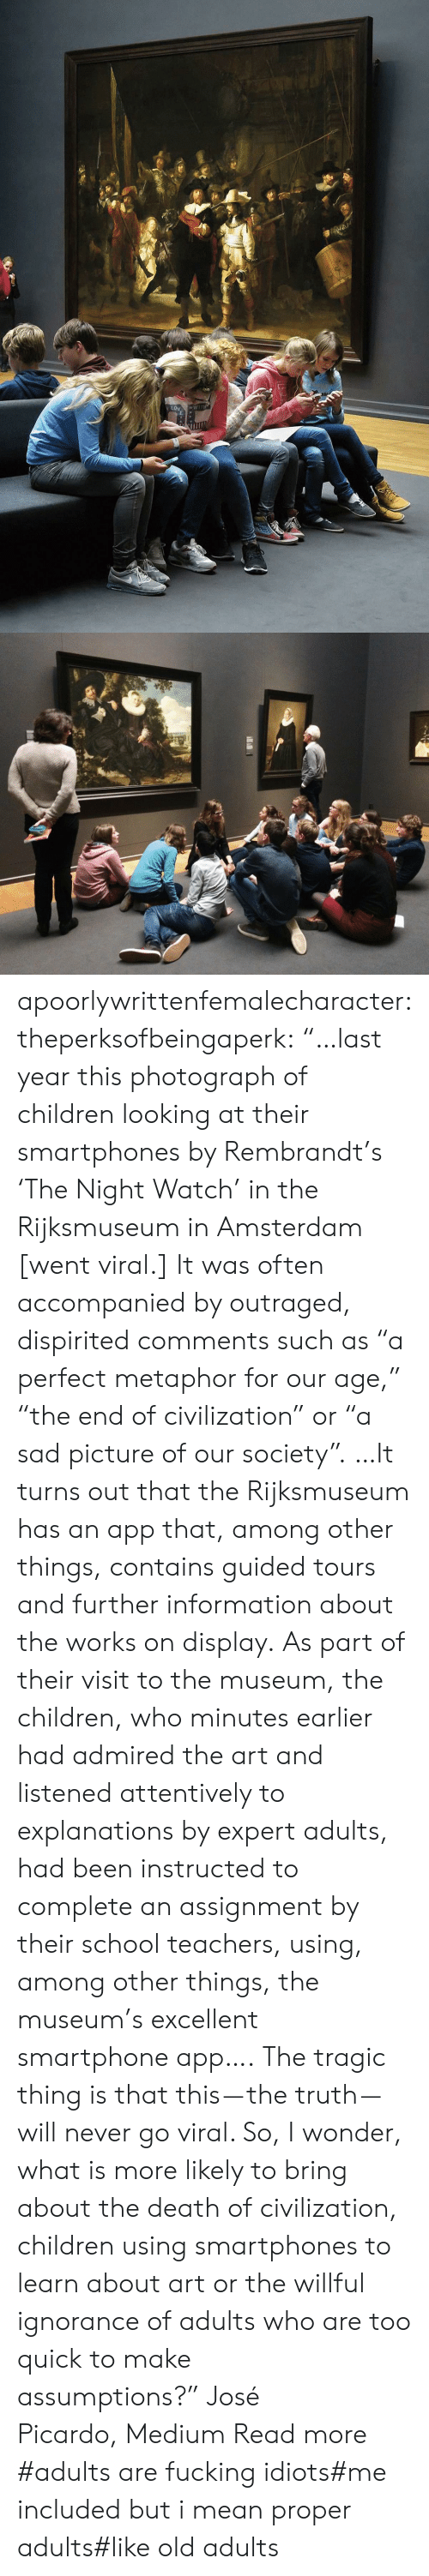 "Explanations: apoorlywrittenfemalecharacter: theperksofbeingaperk:  ""…last year this photograph of children looking at their smartphones by Rembrandt's 'The Night Watch' in the Rijksmuseum in Amsterdam [went viral.] It was often accompanied by outraged, dispirited comments such as ""a perfect metaphor for our age,"" ""the end of civilization"" or ""a sad picture of our society"". …It turns out that the Rijksmuseum has an app that, among other things, contains guided tours and further information about the works on display. As part of their visit to the museum, the children, who minutes earlier had admired the art and listened attentively to explanations by expert adults, had been instructed to complete an assignment by their school teachers, using, among other things, the museum's excellent smartphone app….   The tragic thing is that this — the truth — will never go viral. So, I wonder, what is more likely to bring about the death of civilization, children using smartphones to learn about art or the willful ignorance of adults who are too quick to make assumptions?"" José Picardo, Medium Read more    #adults are fucking idiots#me included but i mean proper adults#like old adults"